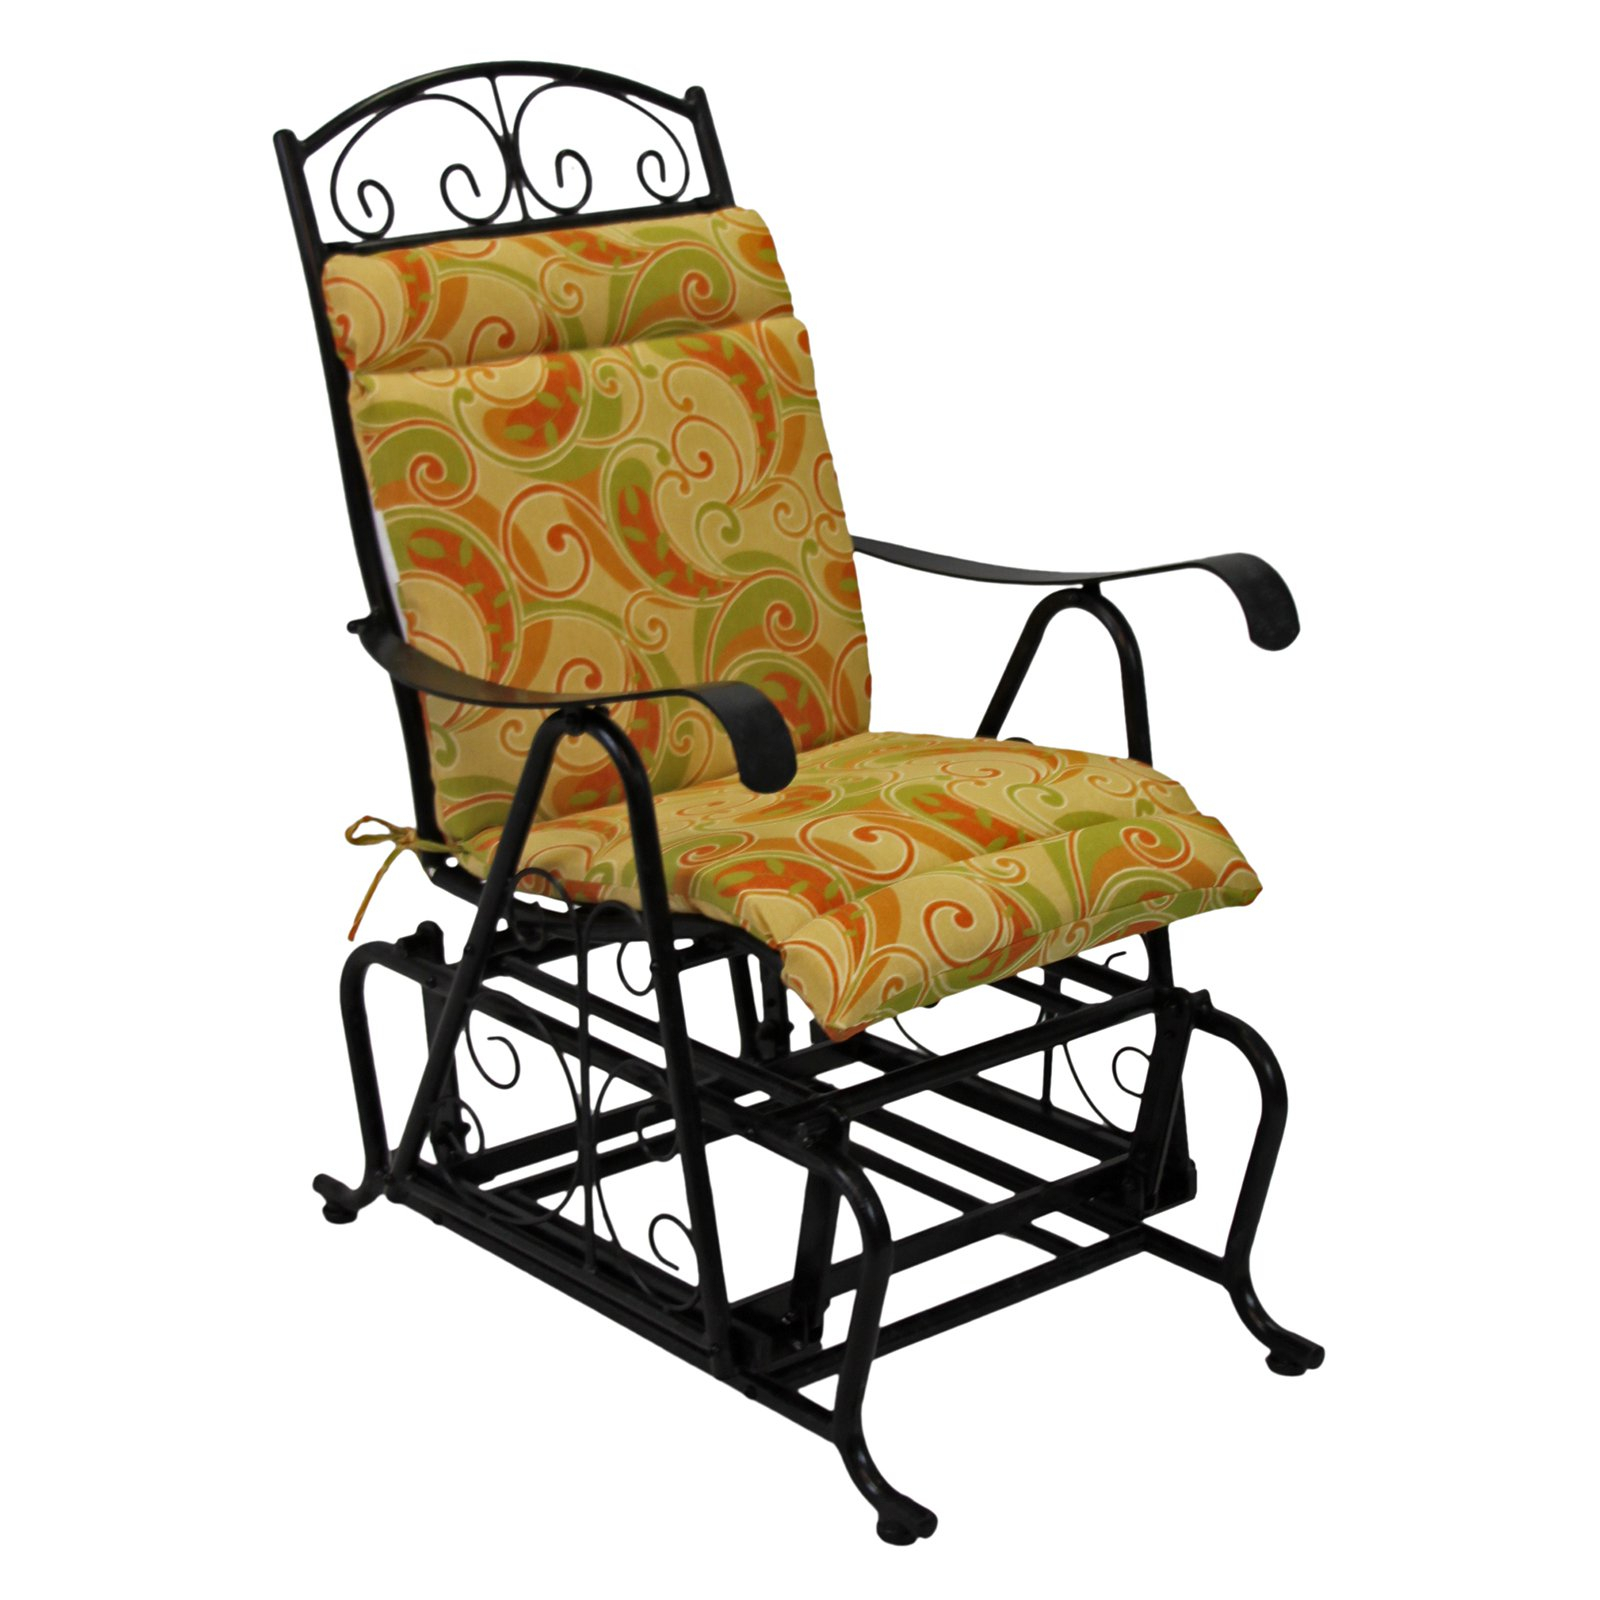 Blazing Needles Outdoor Glider Chair Hinged Seat & Back Intended For Glider Benches With Cushion (View 14 of 25)